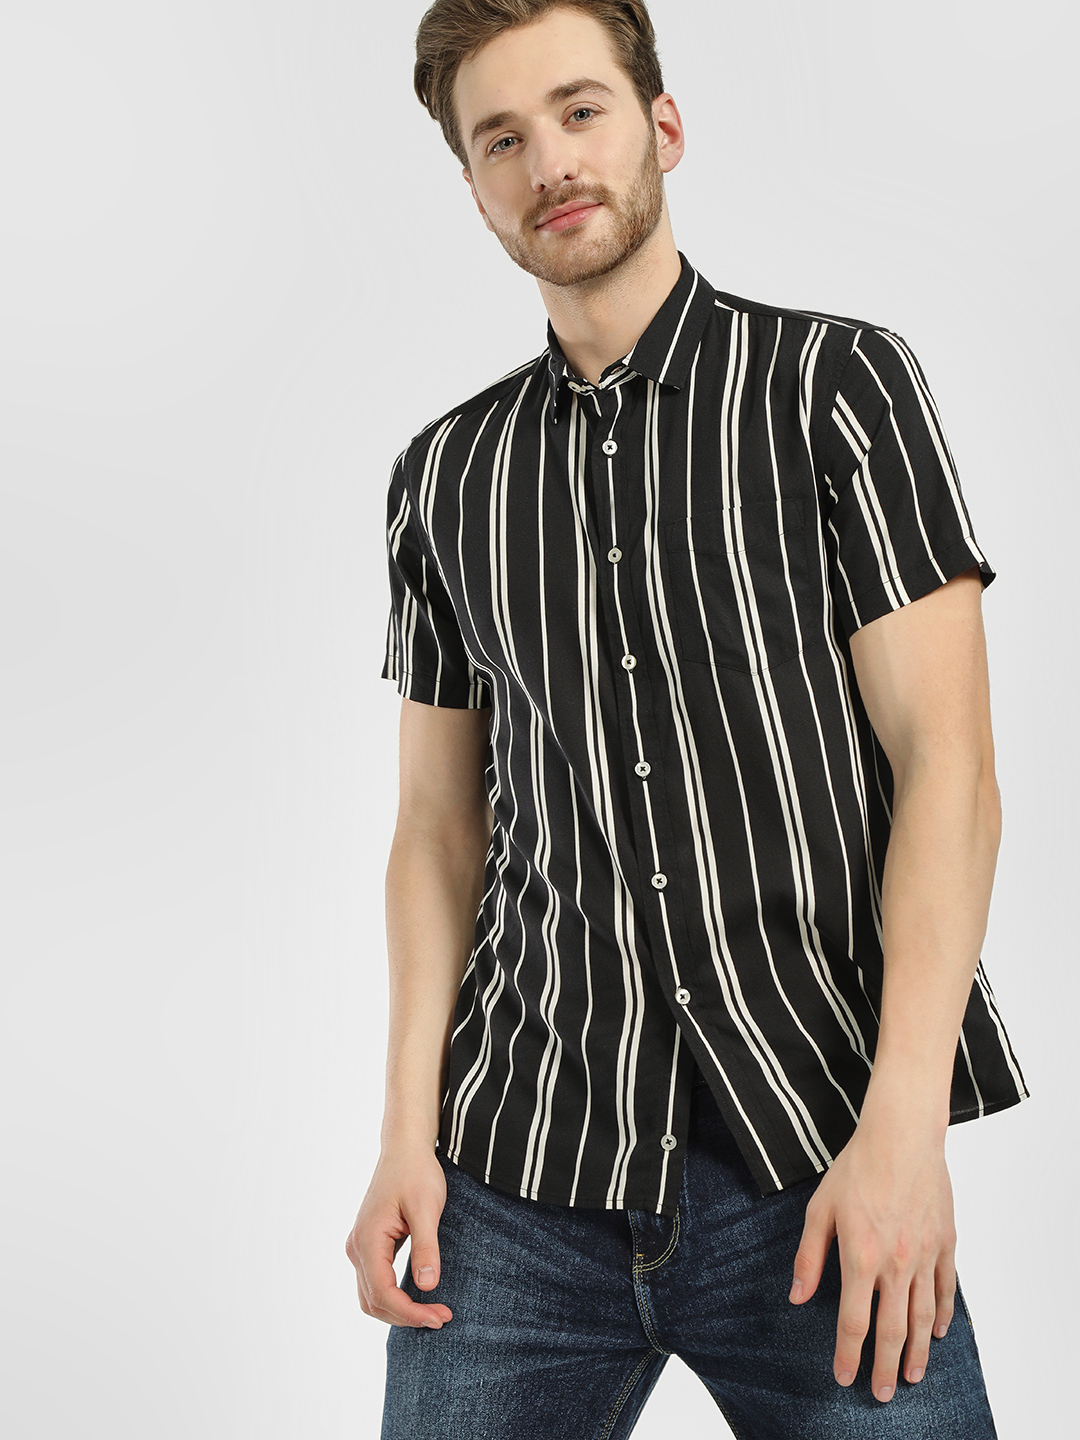 Celio Black Vertical Stripe Casual Shirt 1